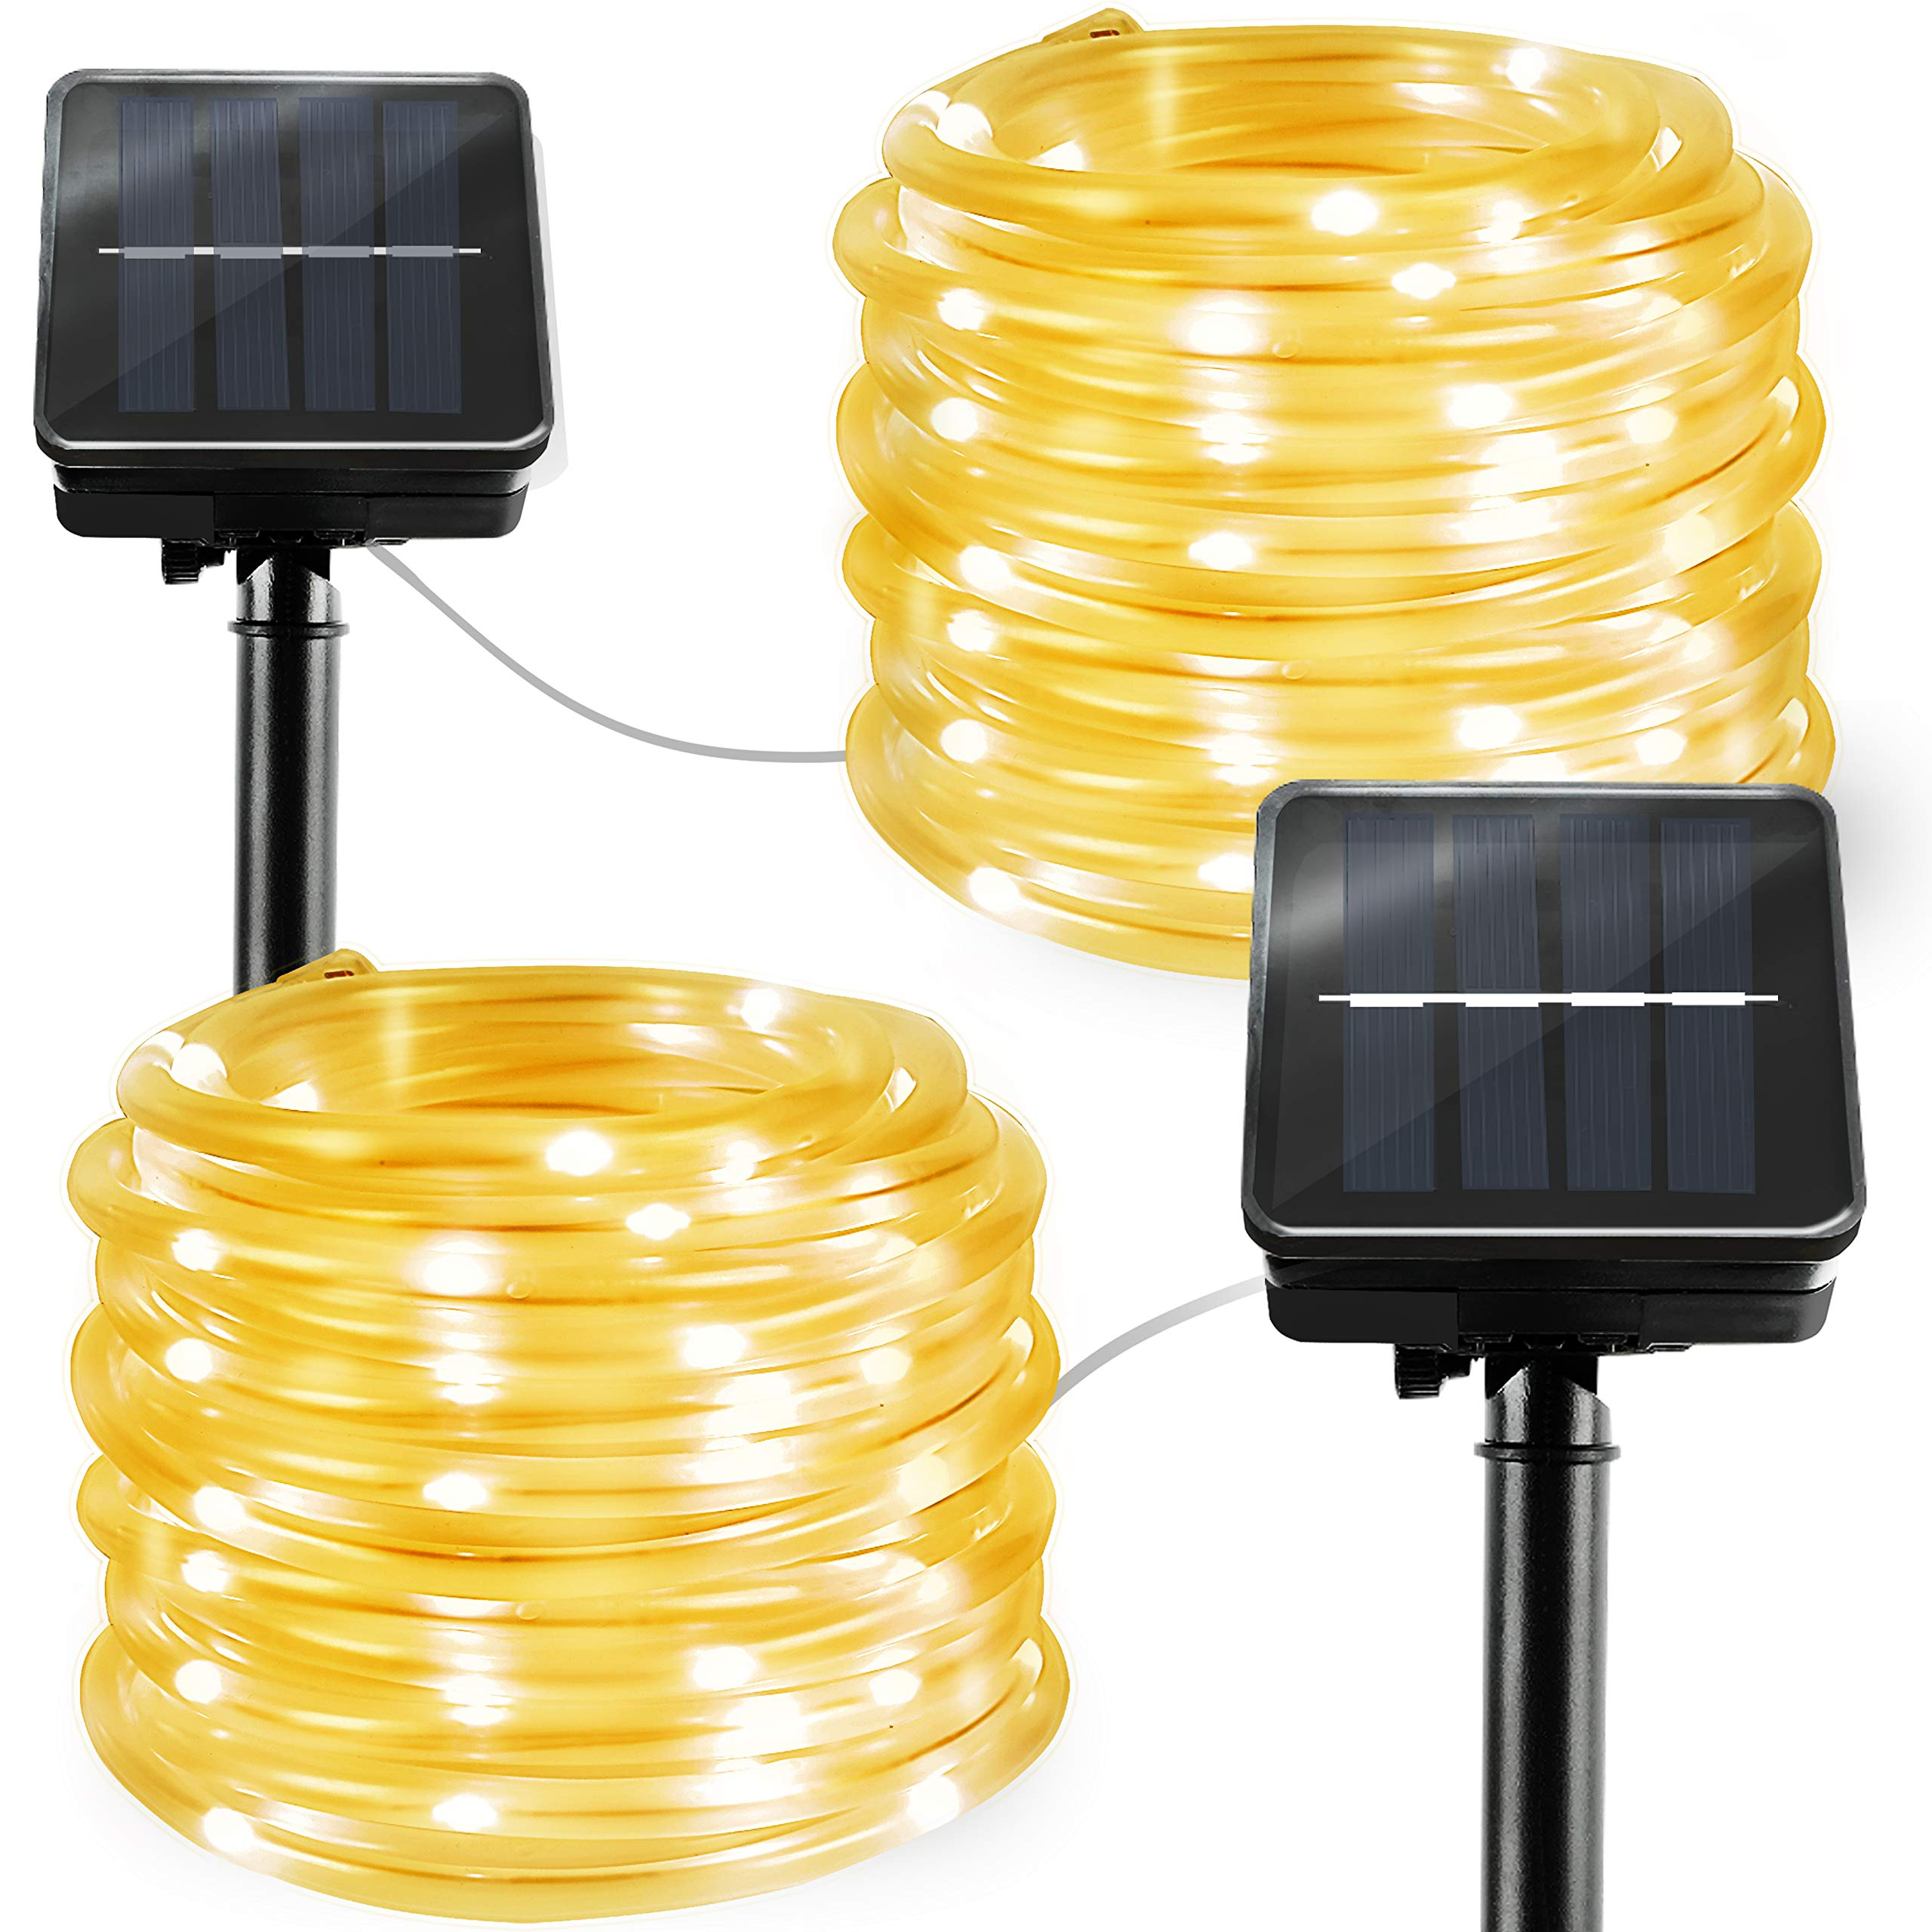 2 Pack 23FT Solar Rope Lights Outdoor LED String Lights Christmas Decorative Lights for Garden Patio Party Yard Warm White